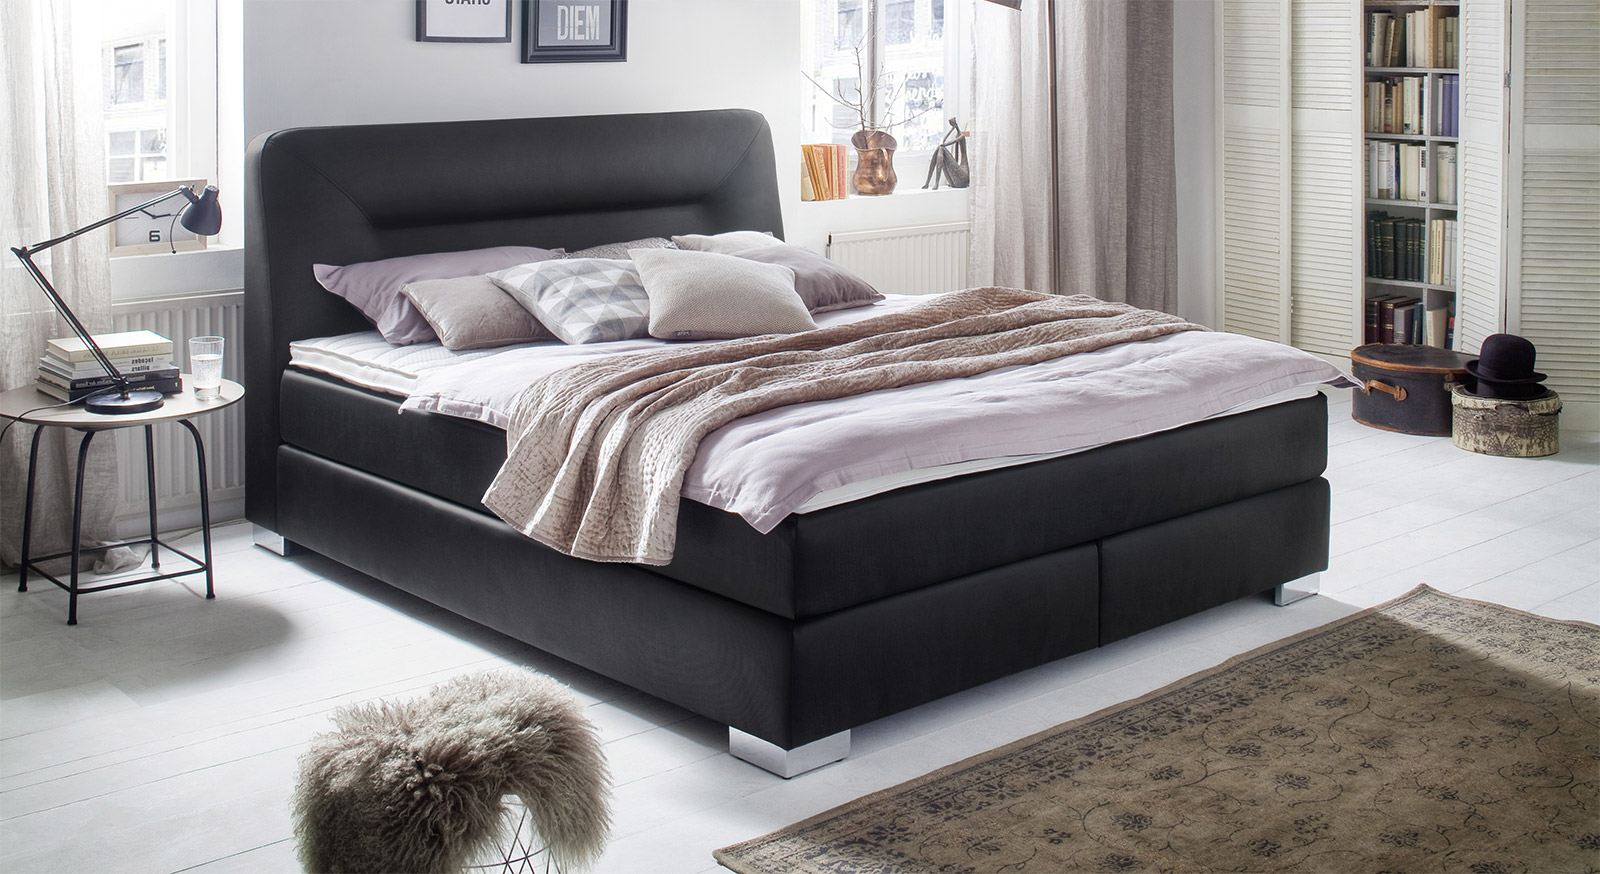 boxspringbett mobel boss. Black Bedroom Furniture Sets. Home Design Ideas